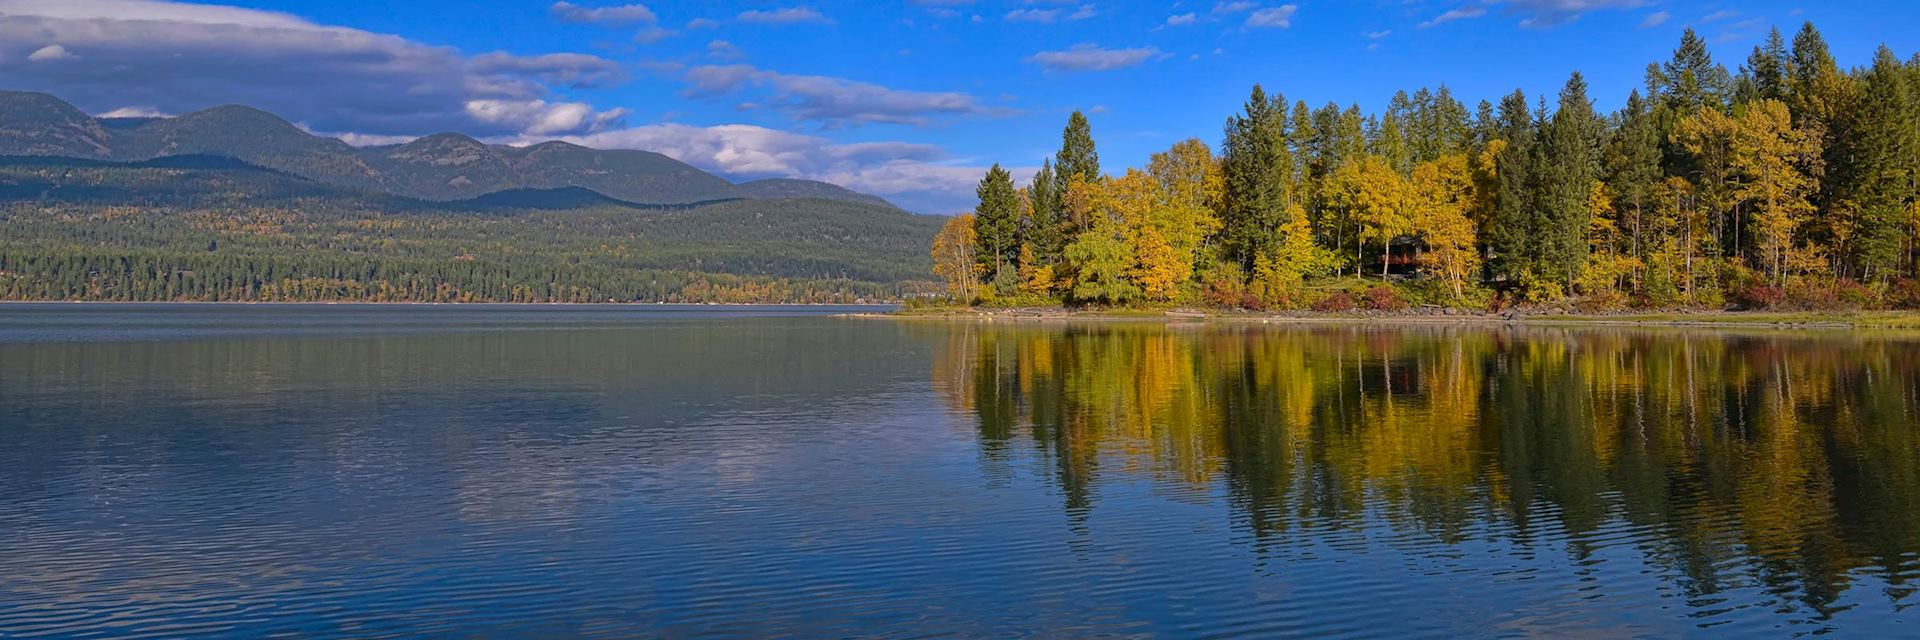 Whitefish Lake, Montana, USA